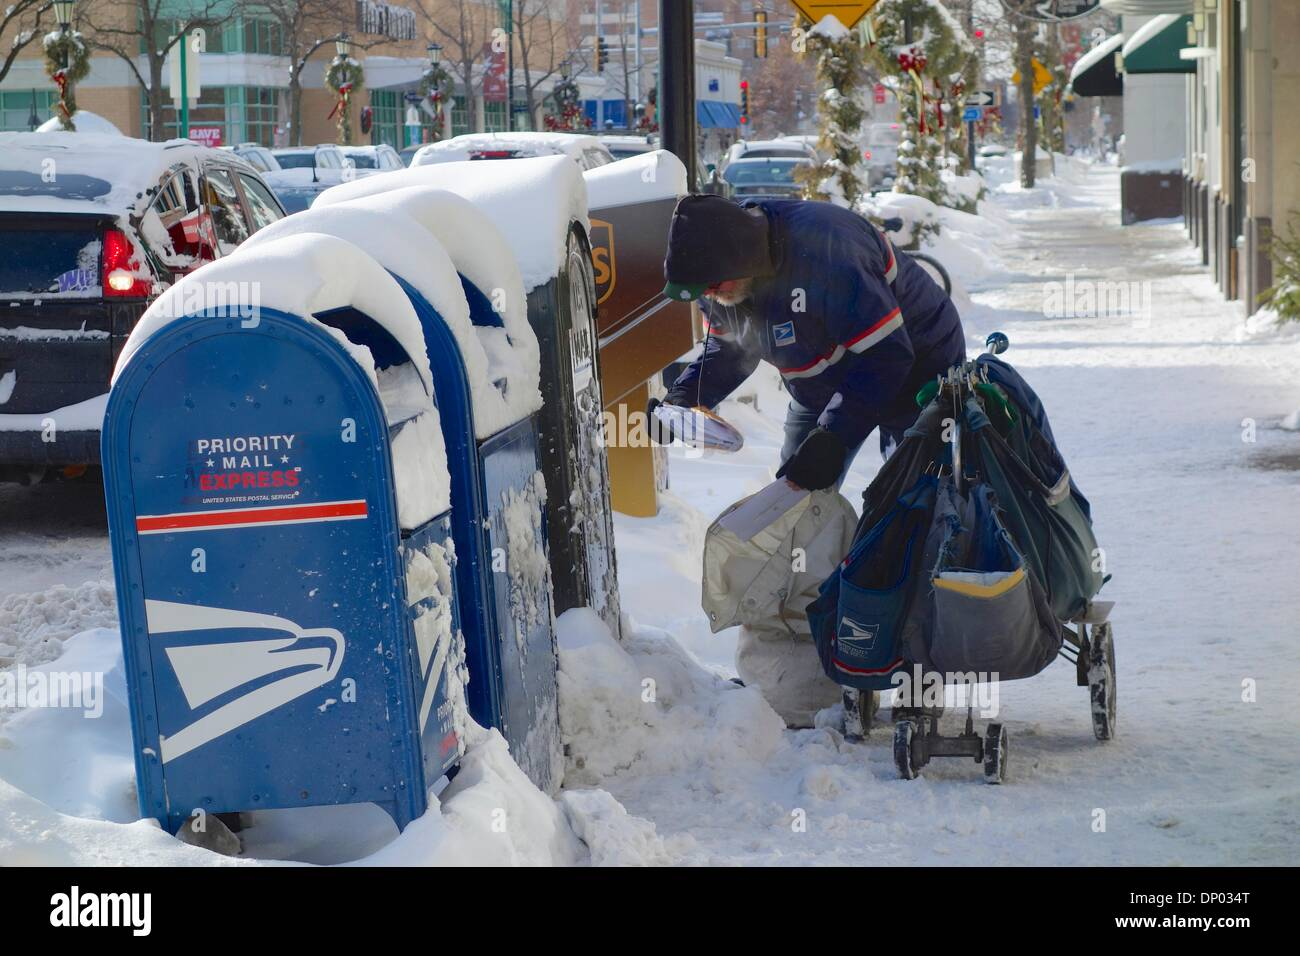 Oak Park, Illinois USA. 6th January 2014. A U.S. Postal Service letter carrier gathers mail from collection boxes along Lake Street at a brutally cold outside temperature of -11ºF/-23ºC. Credit:  Todd Bannor/Alamy Live News - Stock Image